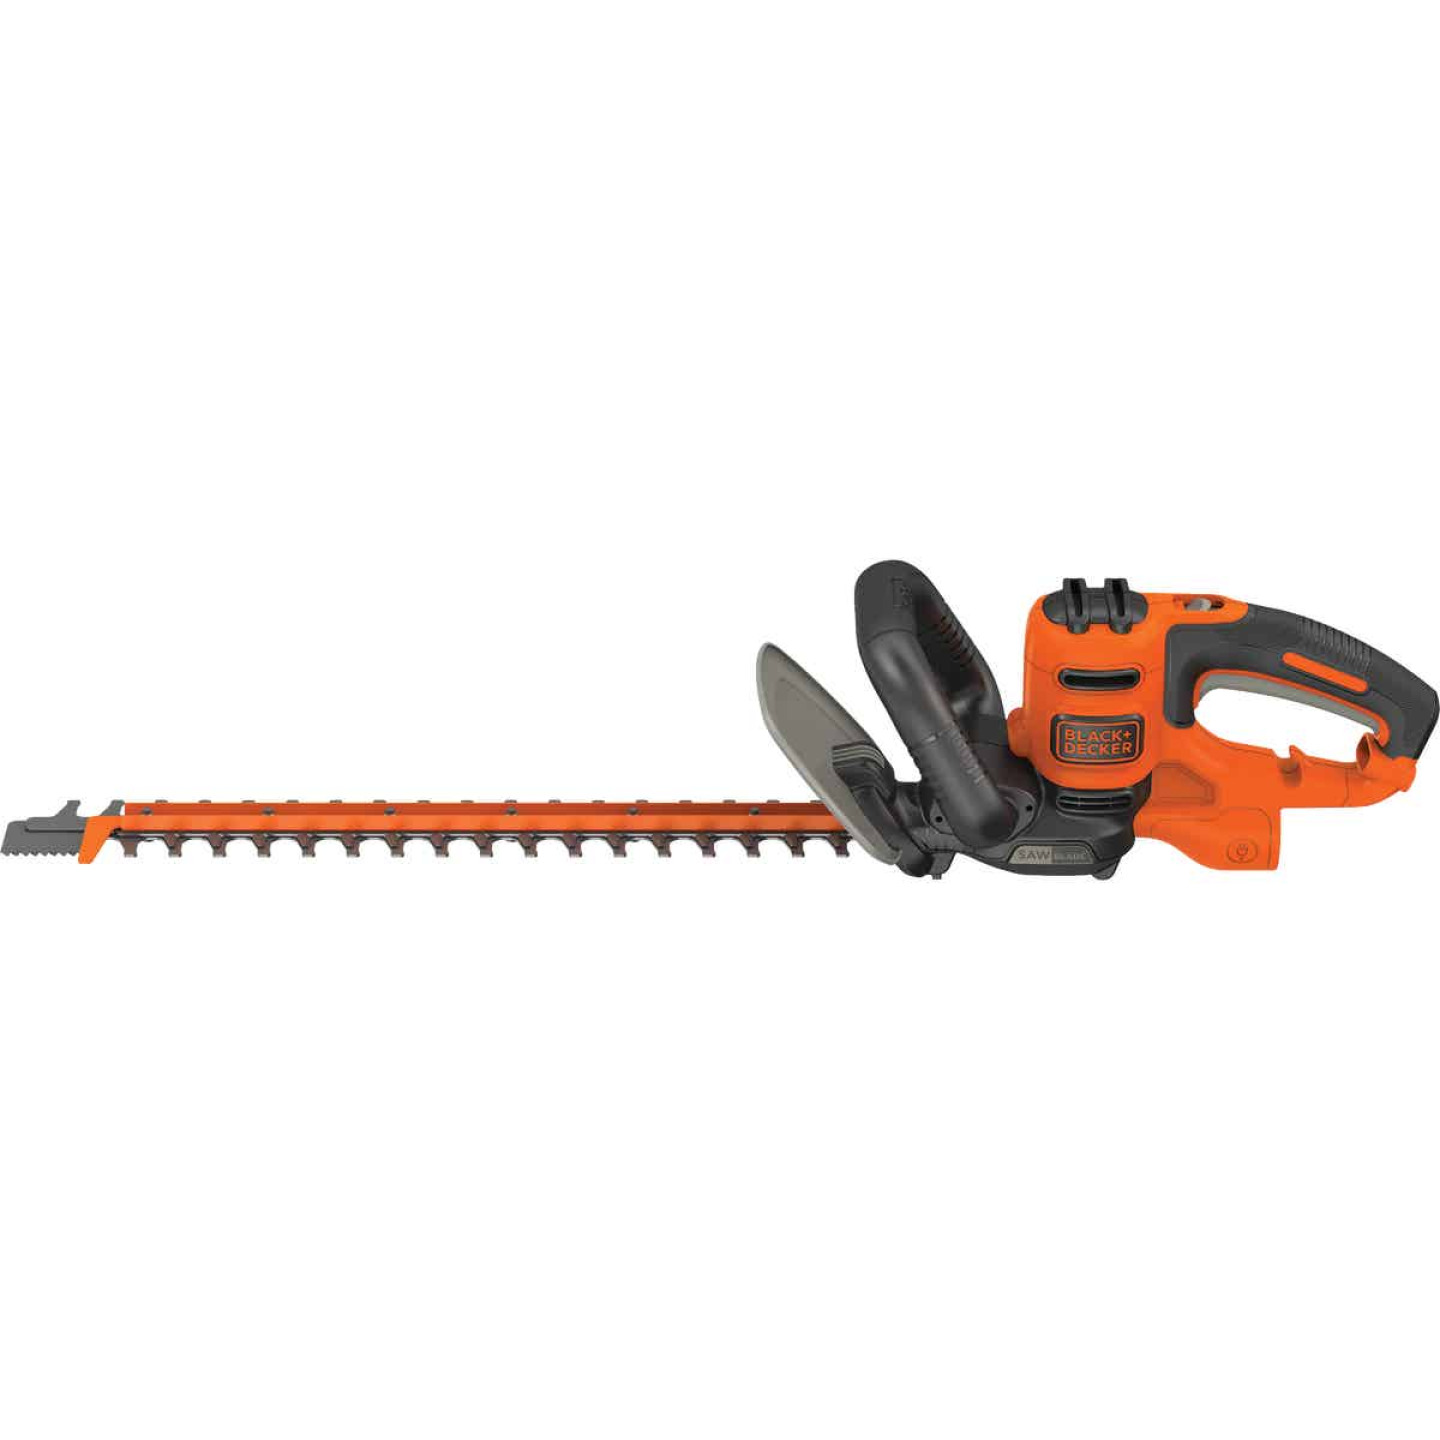 Black & Decker Sawblade 20 In. 3A Corded Electric Hedge Trimmer Image 4